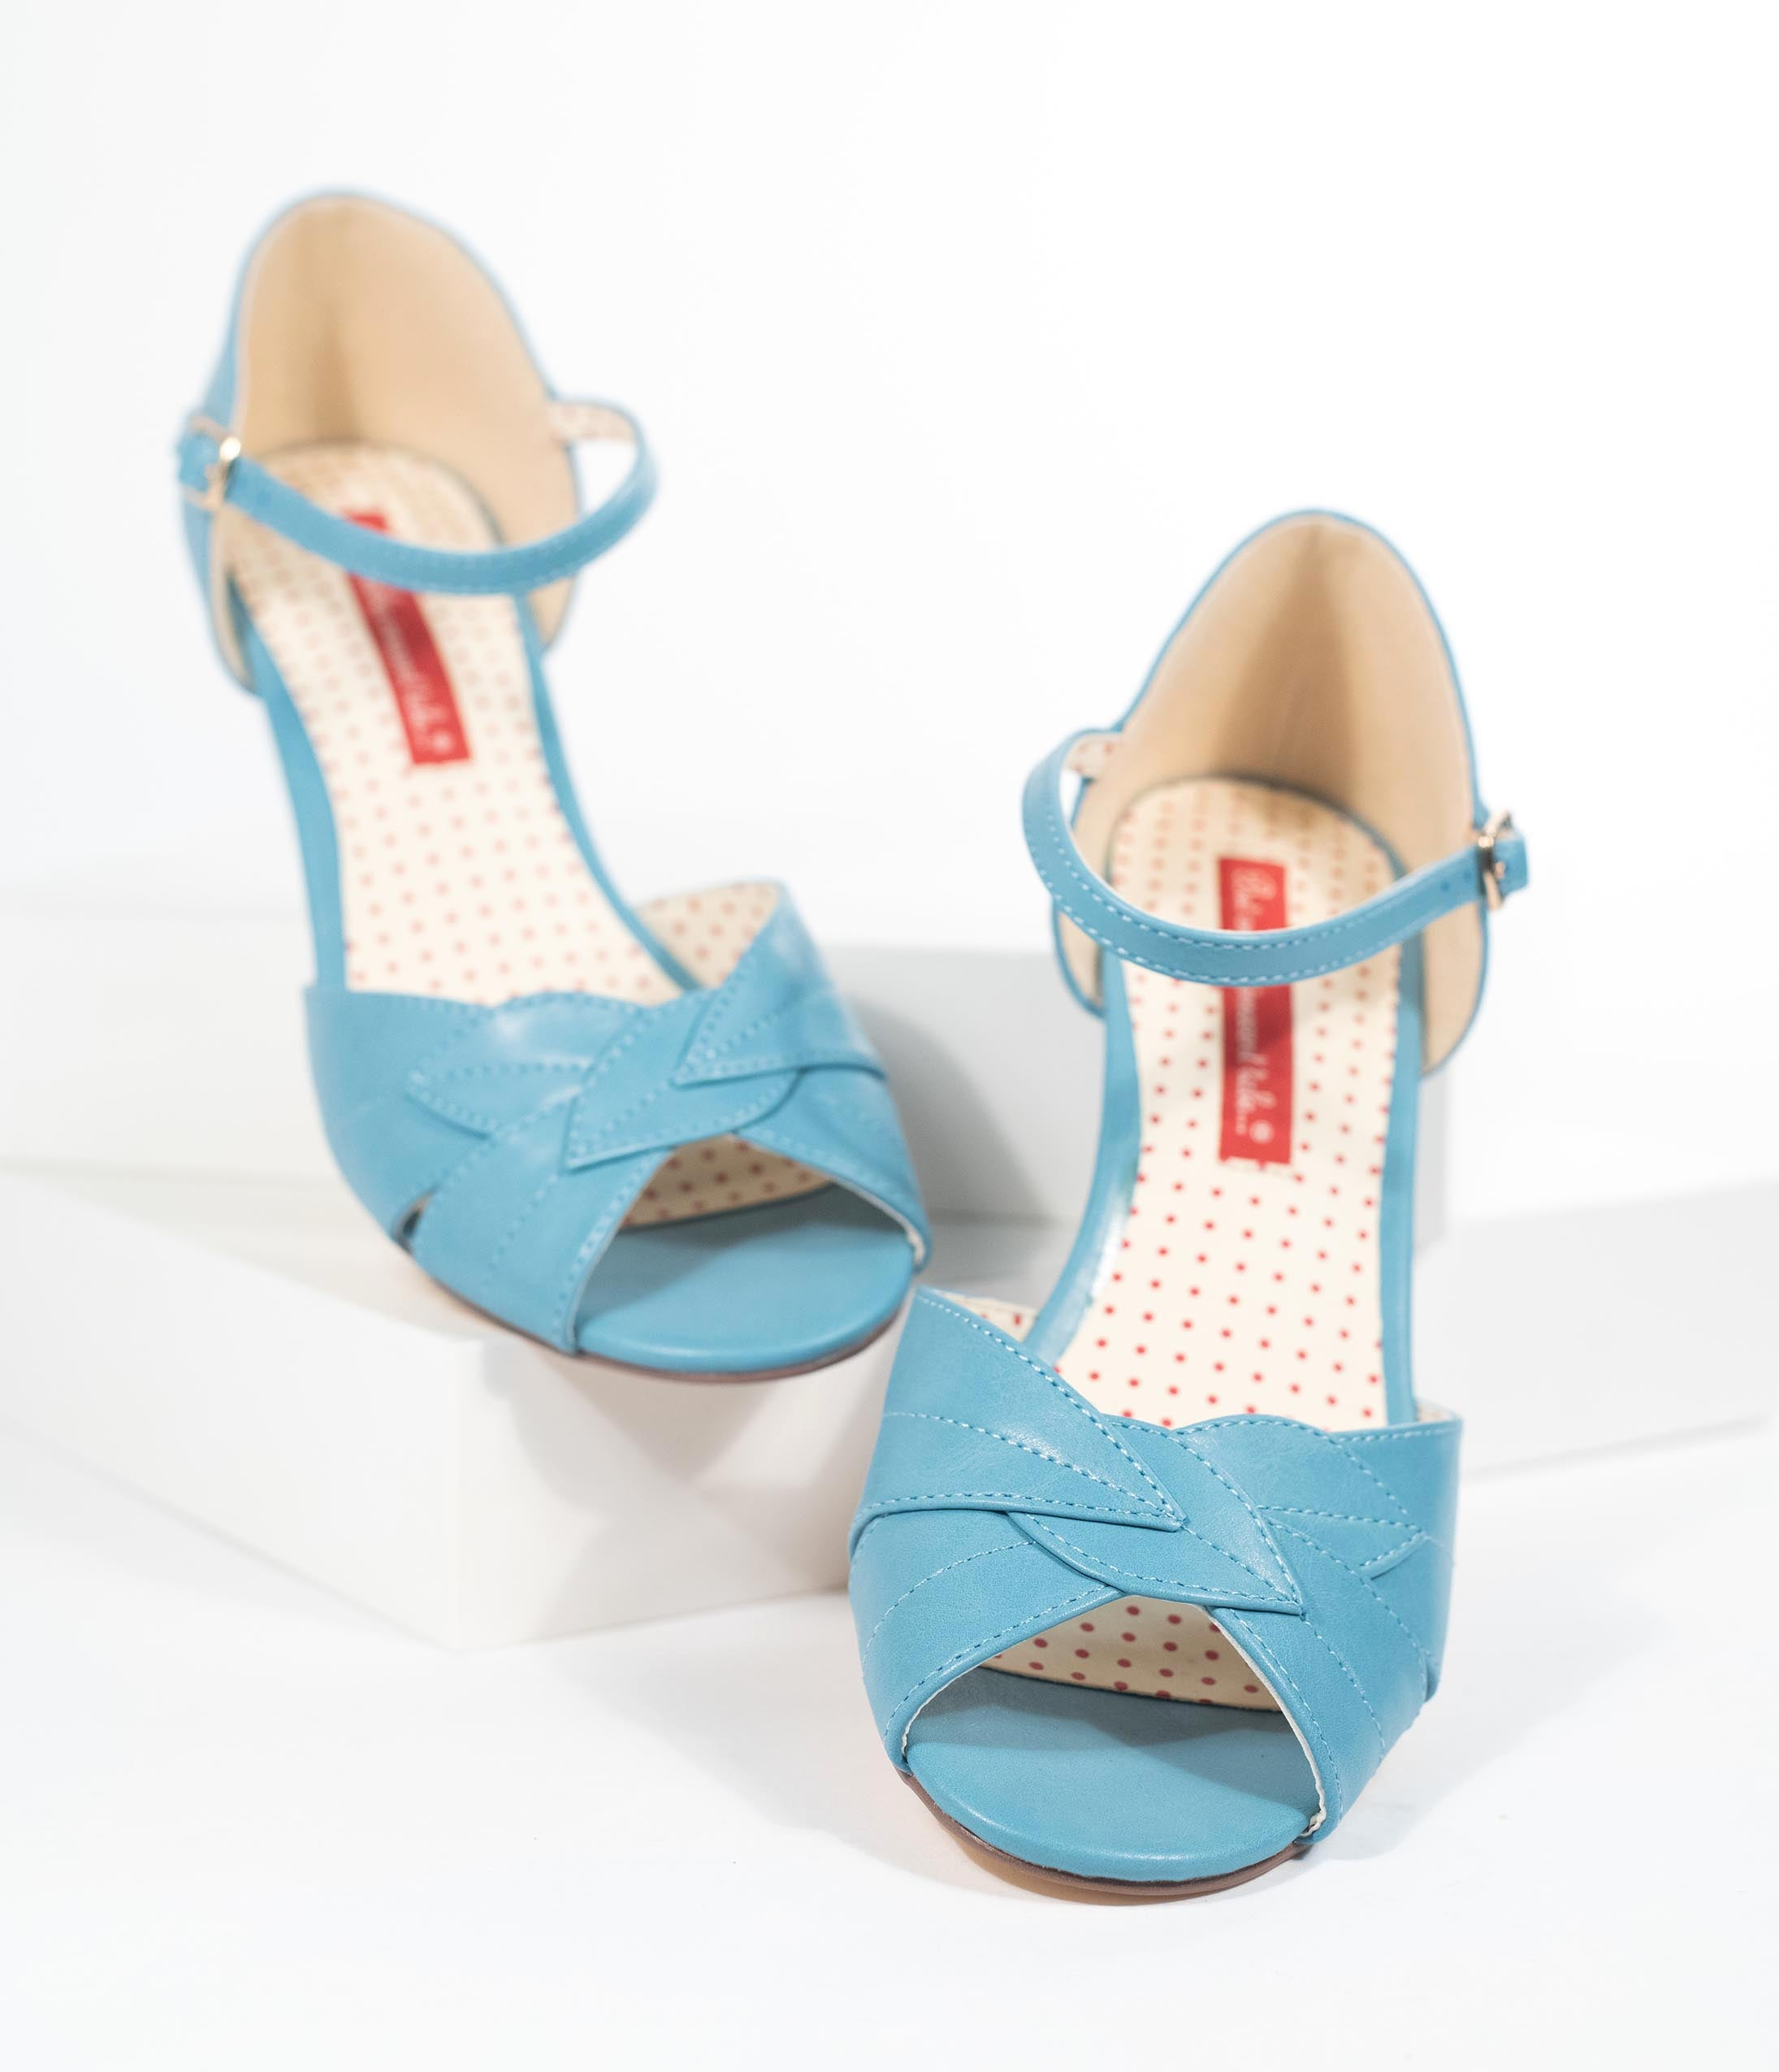 1950s Style Shoes | Heels, Flats, Saddle Shoes B.a.i.t. 1950S Style Cornflower Blue Leatherette Leaf Peep Toe Danita Wedges $70.00 AT vintagedancer.com